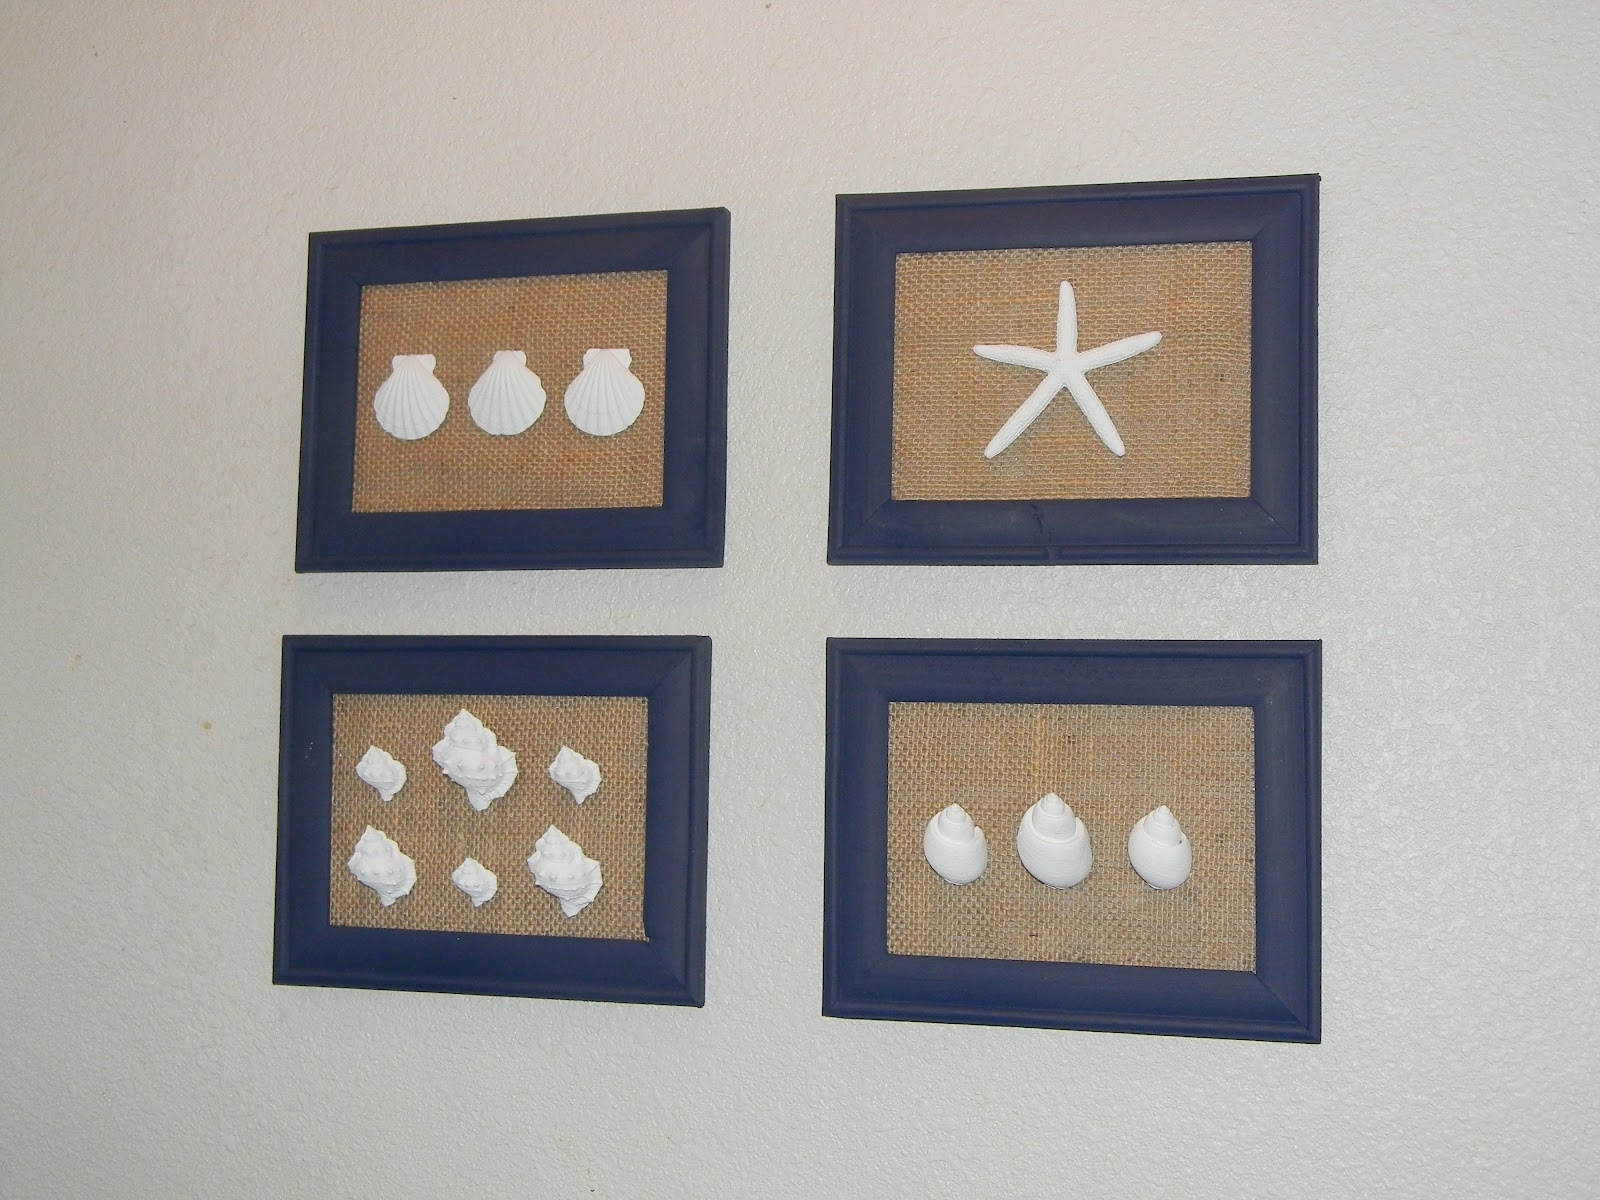 Current Brandy's Creations: Diy Sea Shell And Burlap Wall Art For Wall Art With Seashells (View 15 of 15)